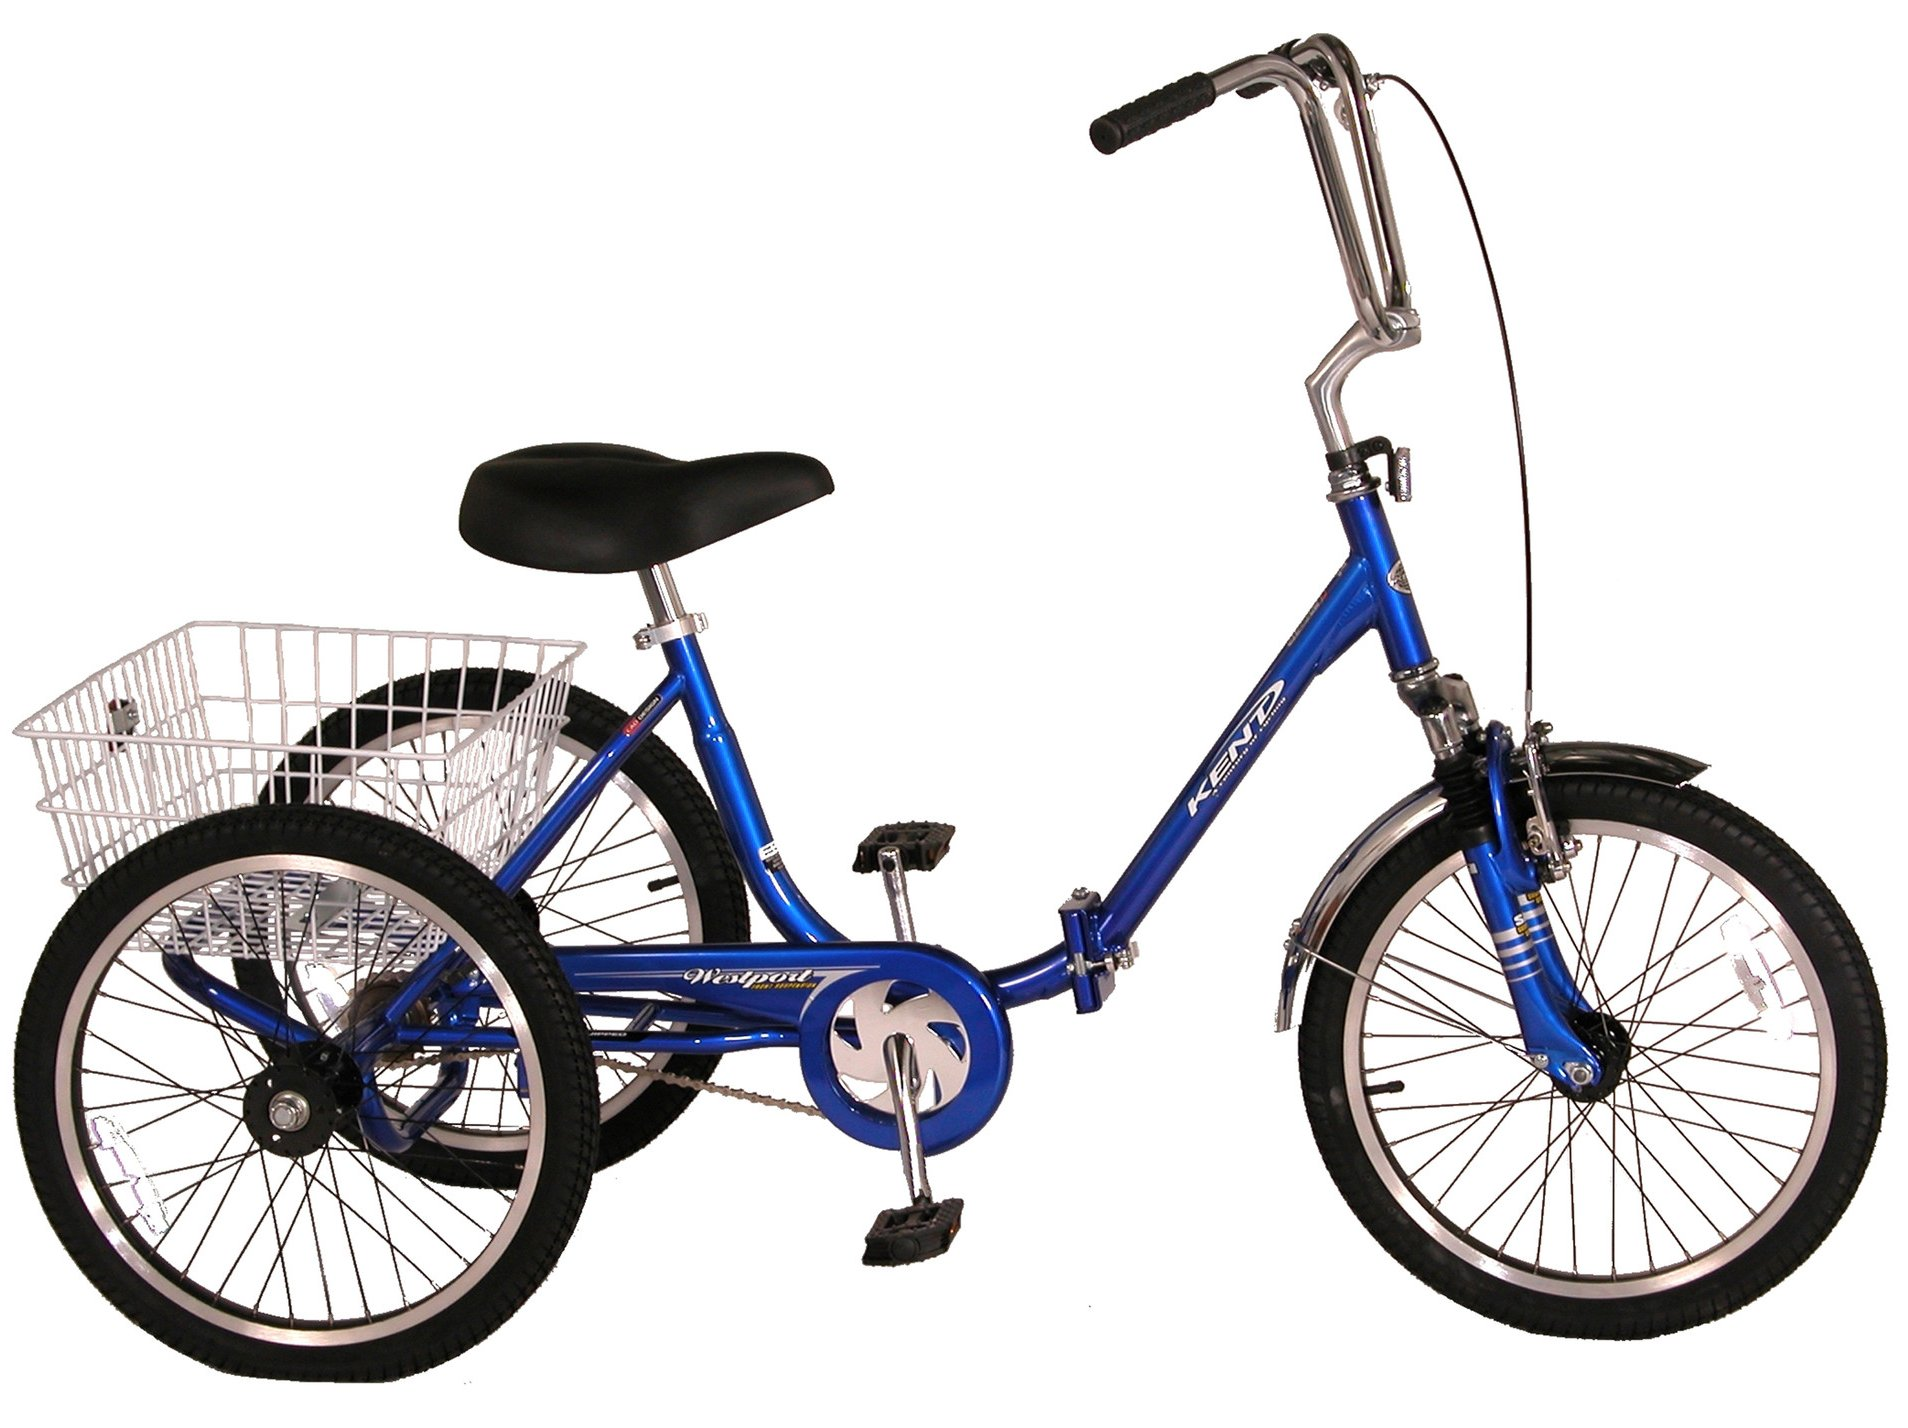 3 Wheel Bikes For Adults Over 300 Lbs kent bicycles westport